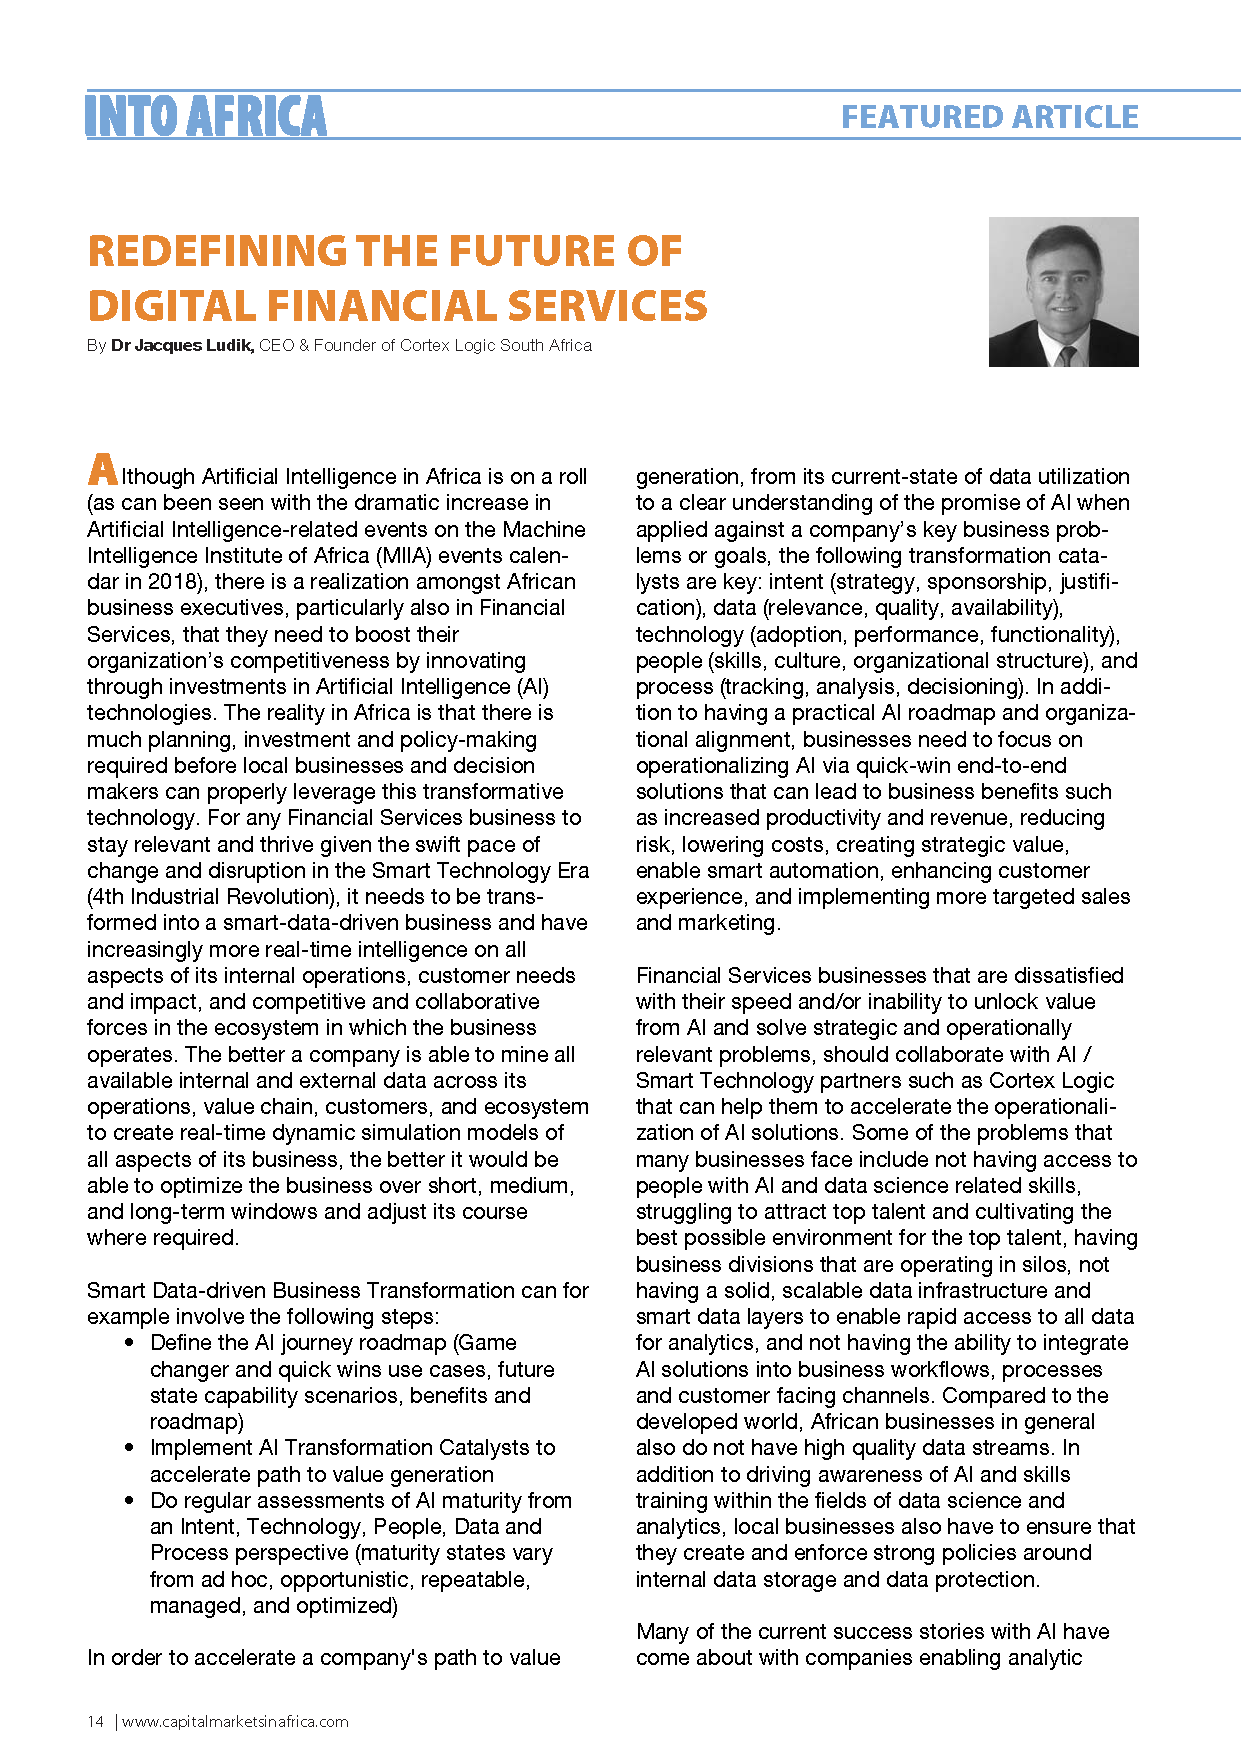 Redefining the Future of Digital Financial Services